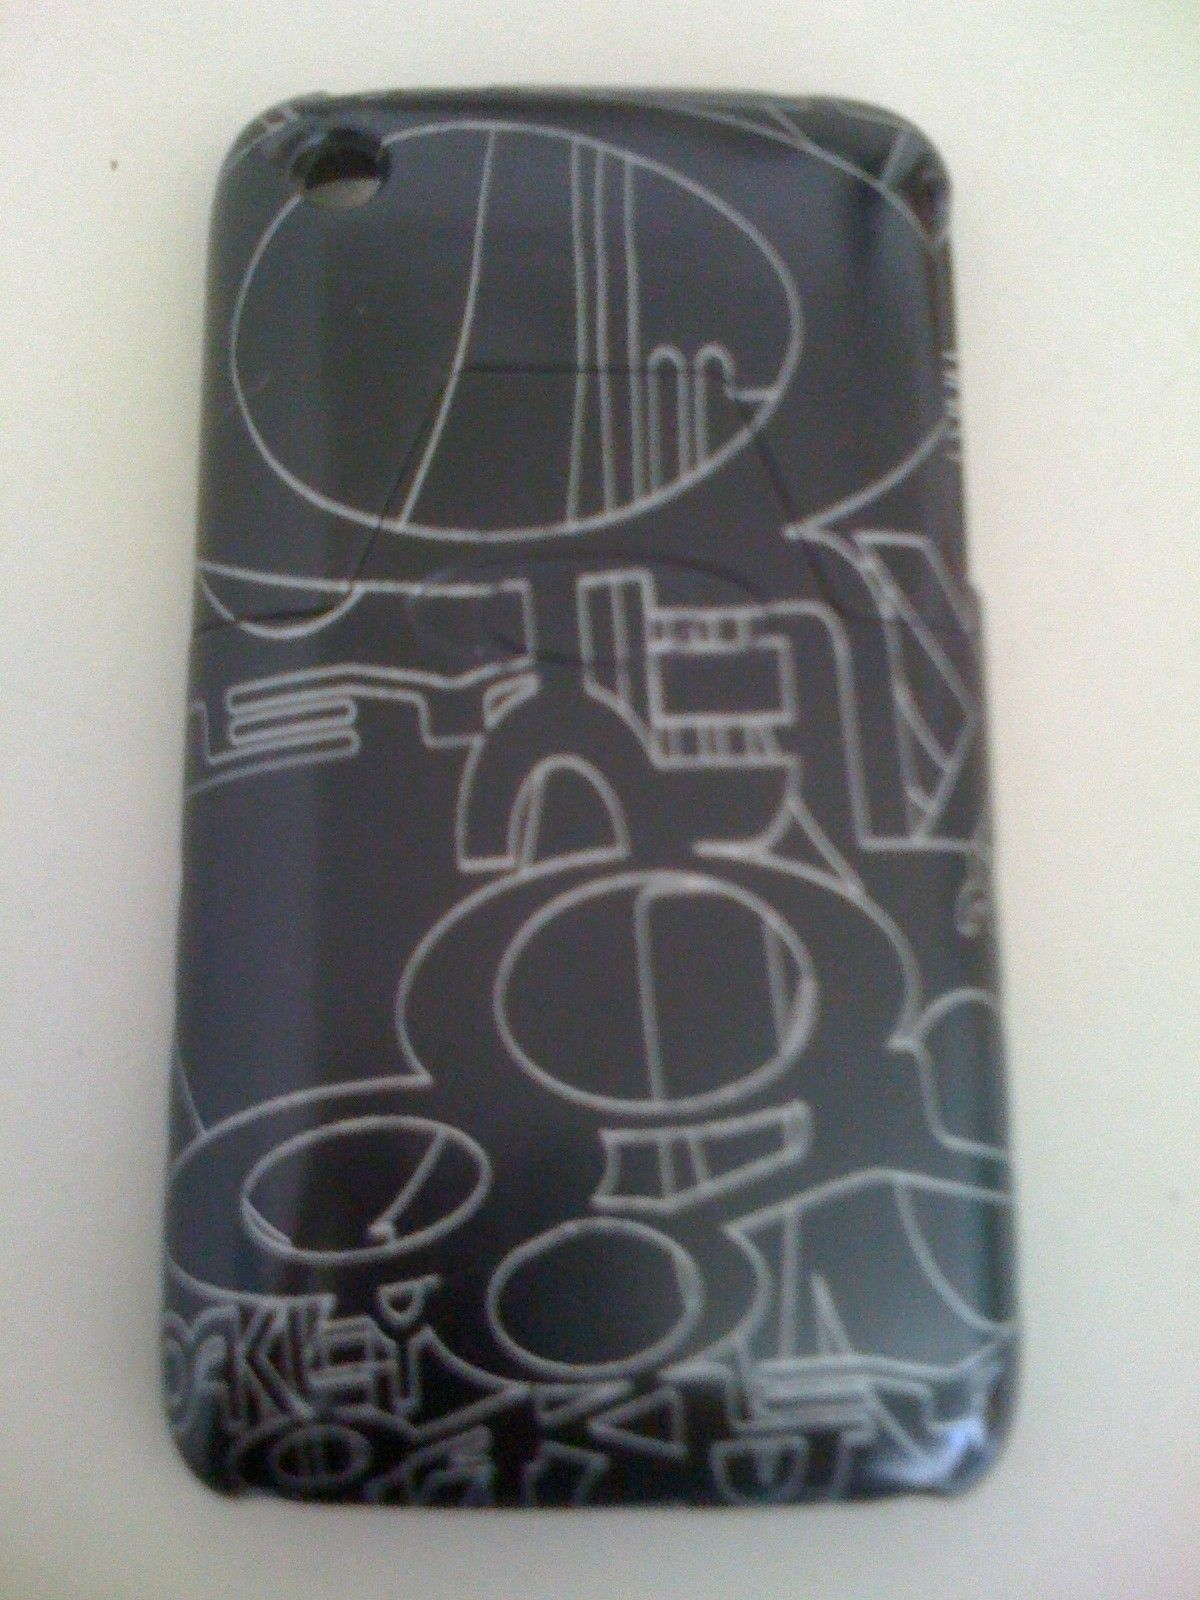 IPhone Case - img1583eo.jpg